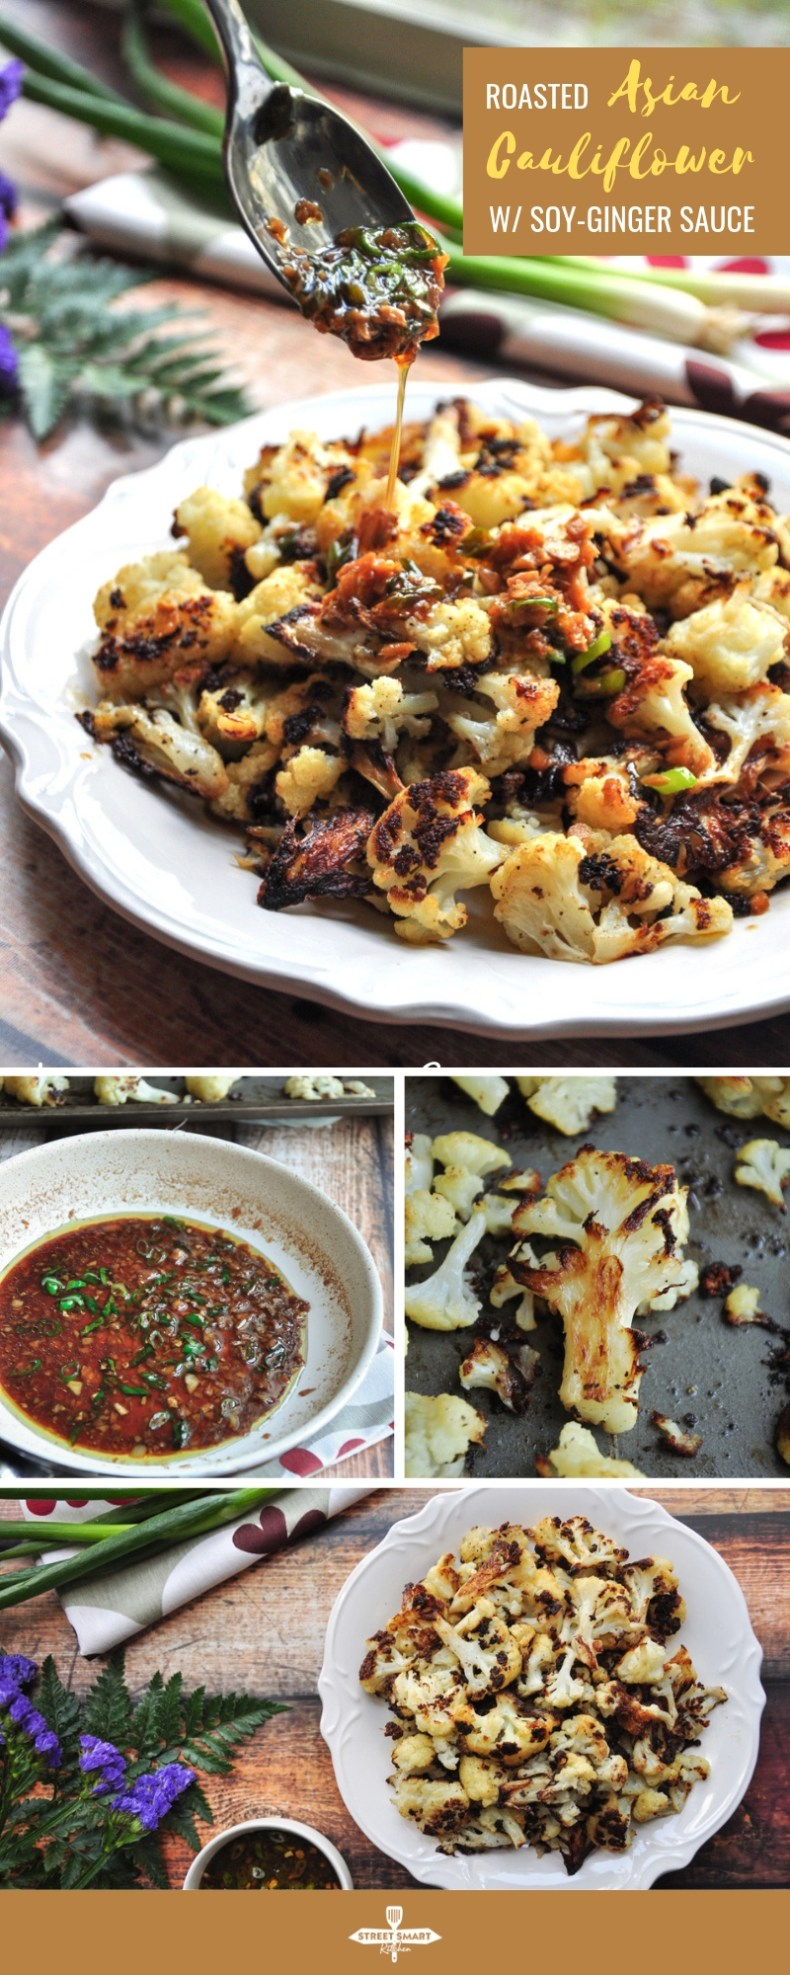 Say goodbye to bland and boring cauliflower. This roasted Asian cauliflower with a soy-ginger sauce is healthy, hearty, and a vegan crowd-pleaser. Ready in 30 minutes.